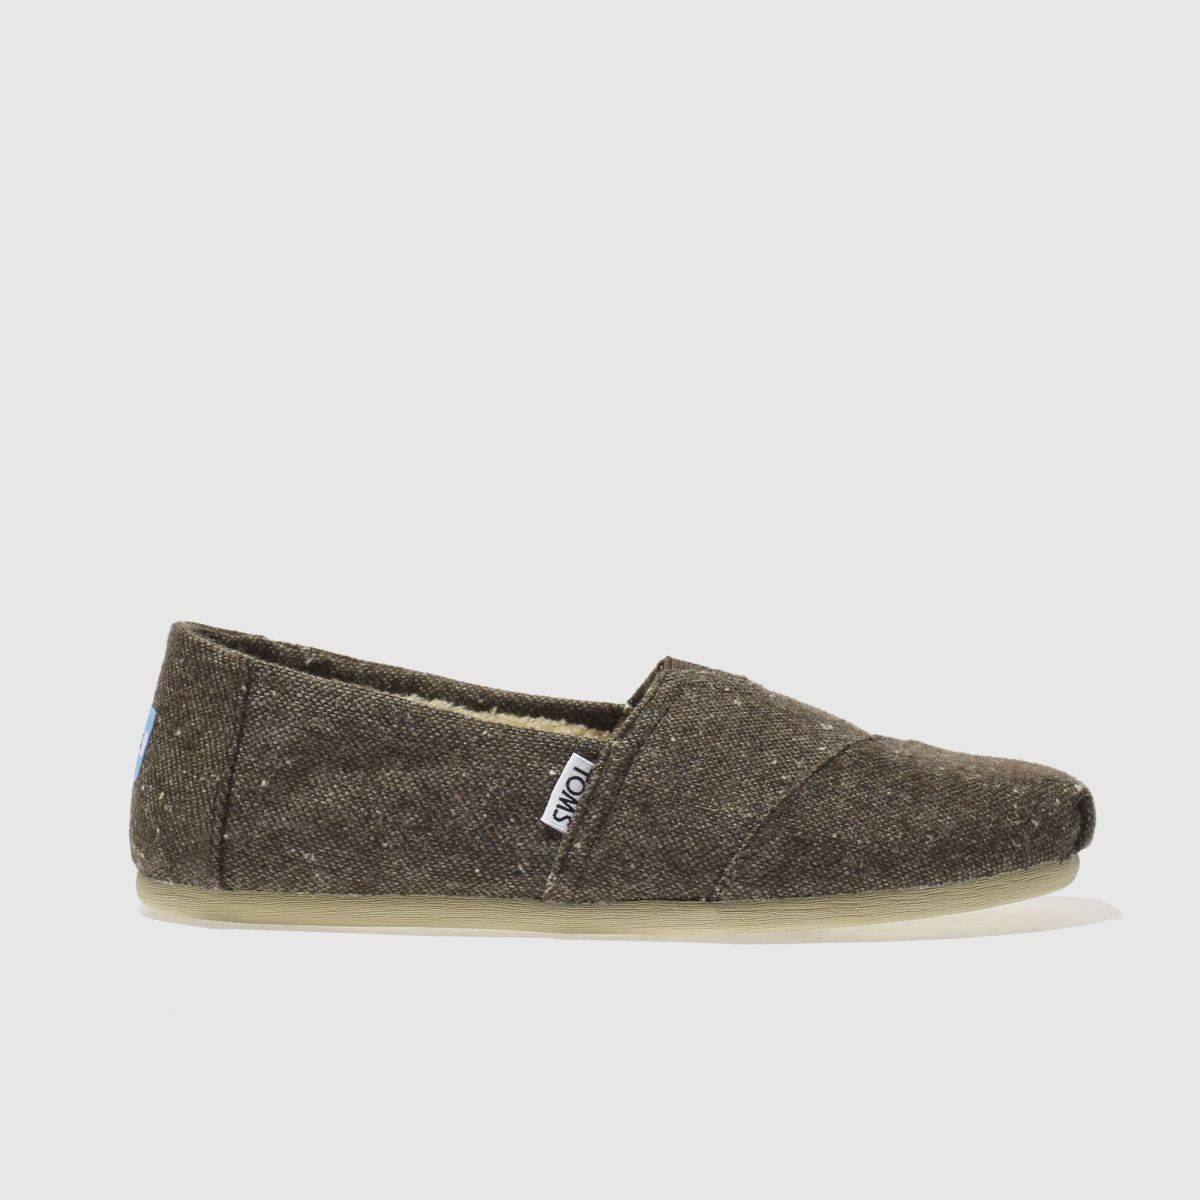 toms brown seasonal classic shoes